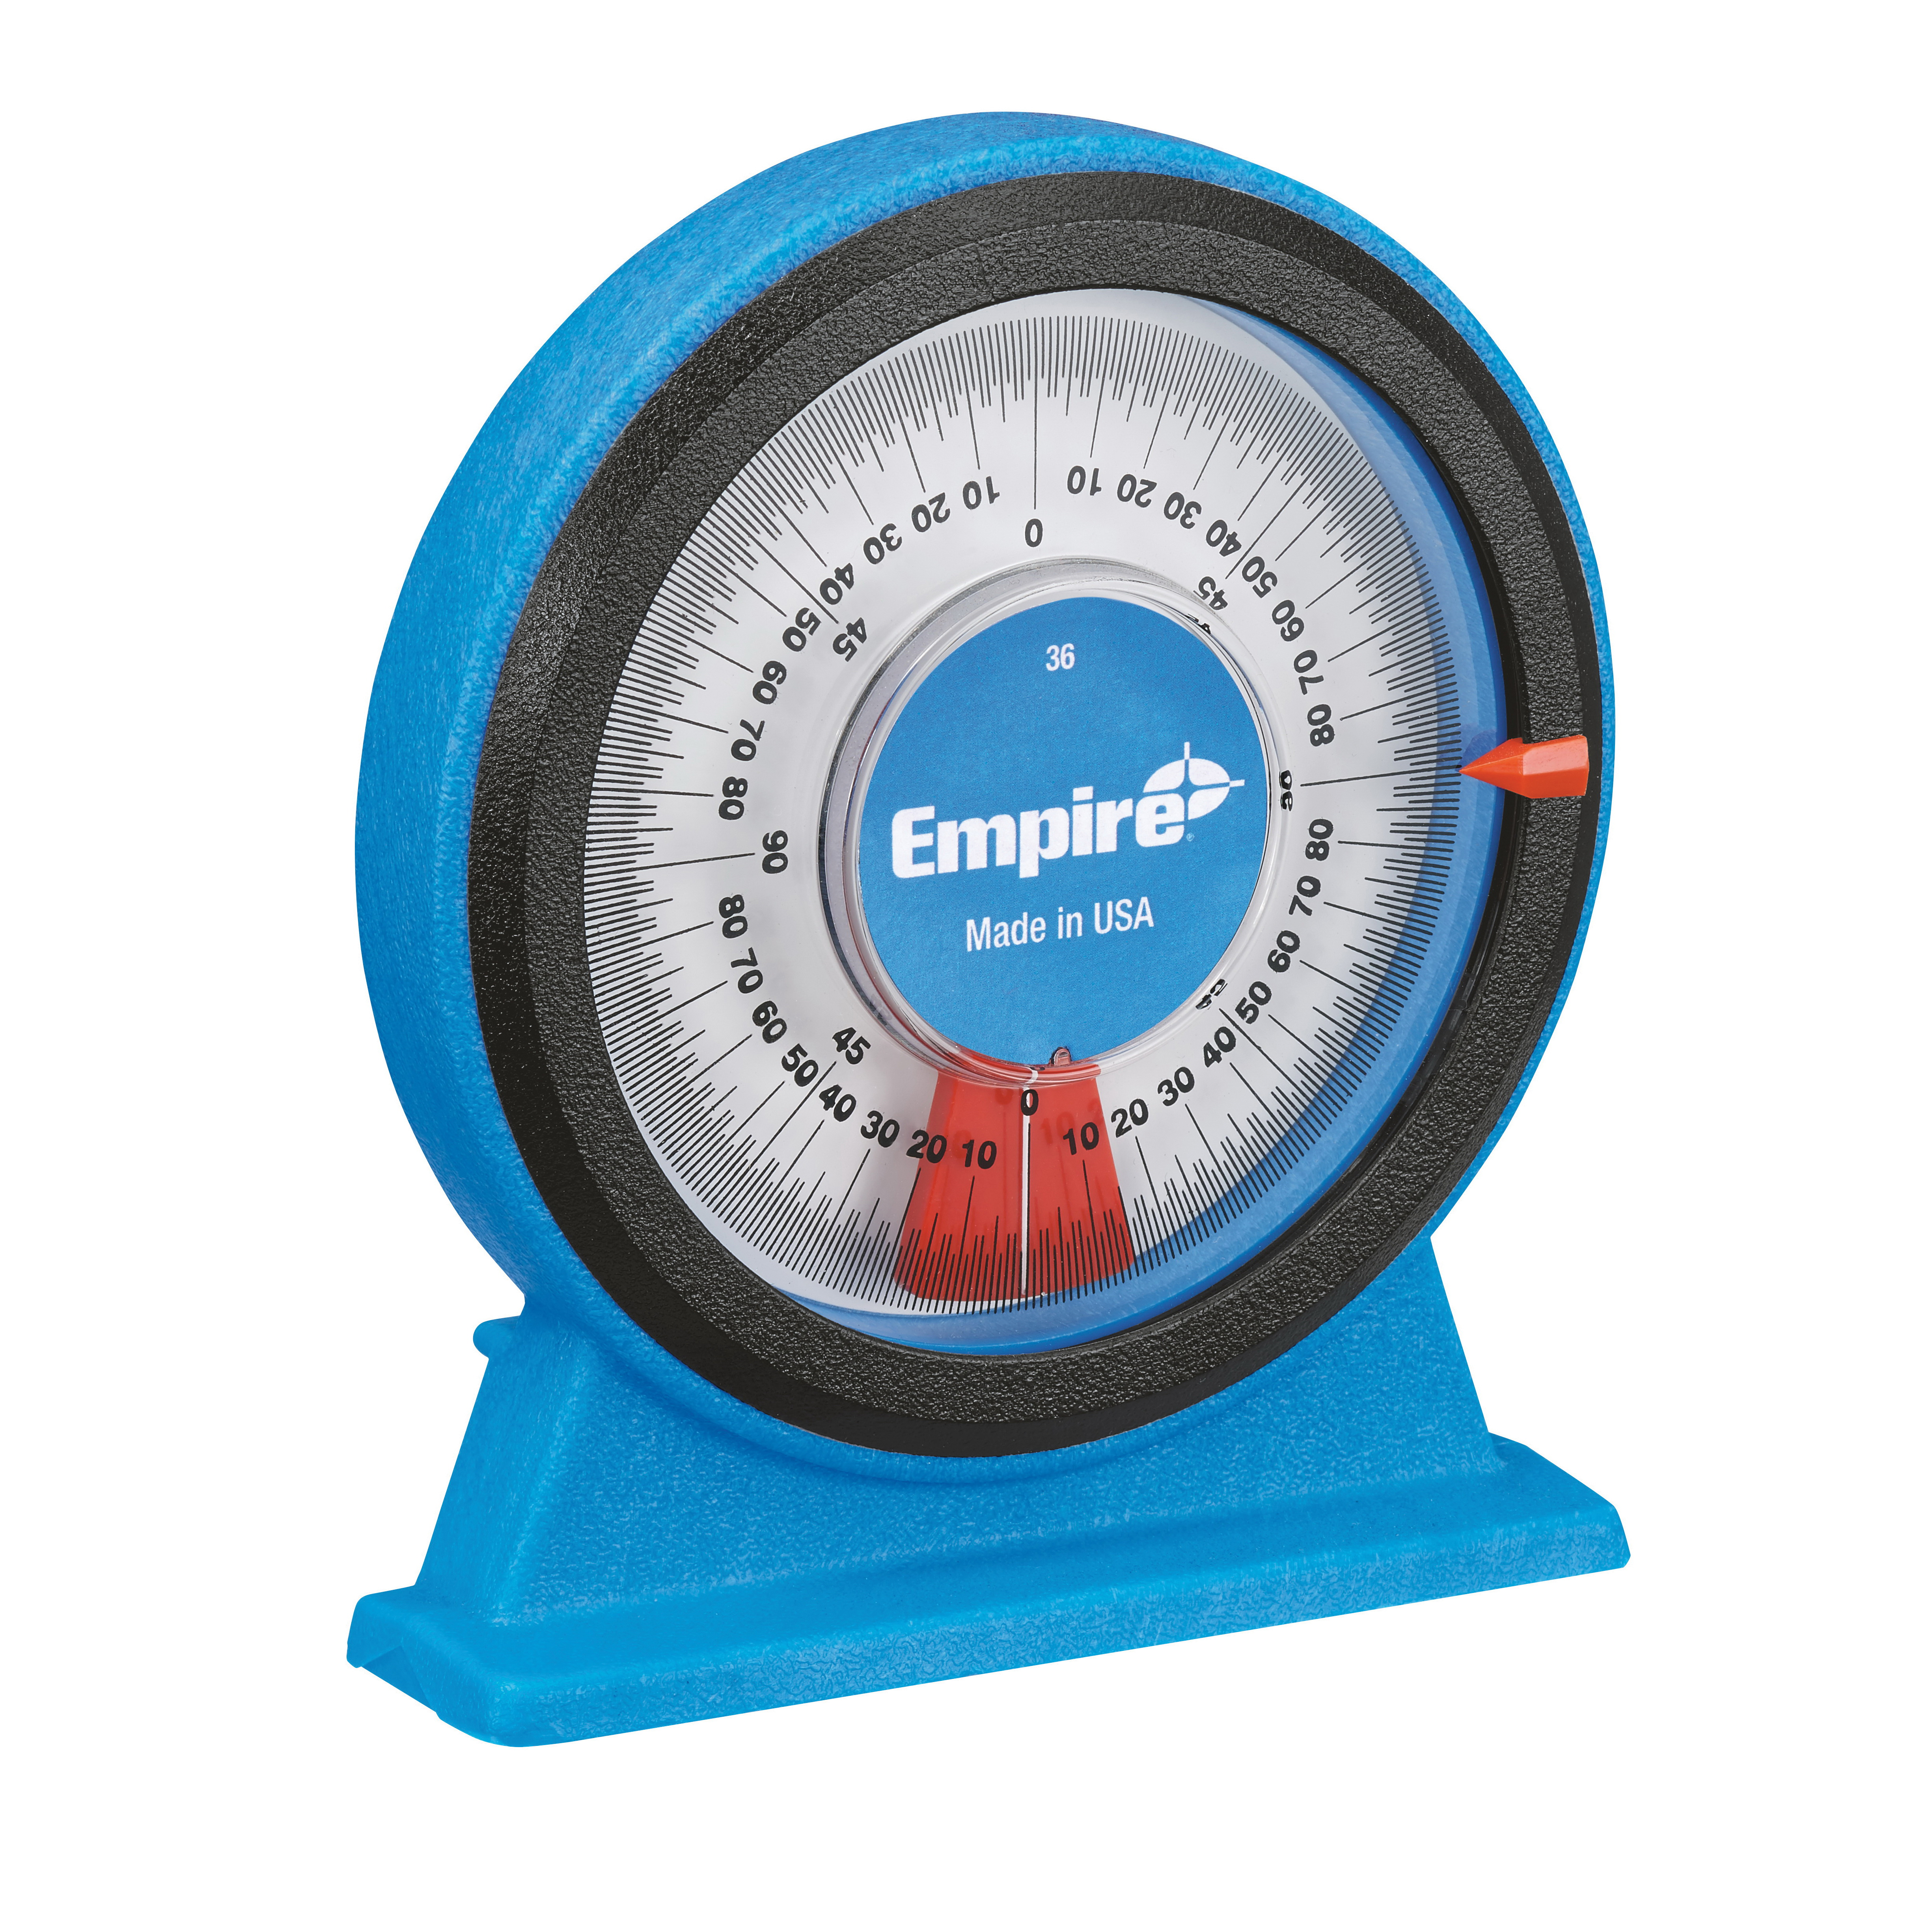 Milwaukee® Empire® 36 Large Magnetic Protractor, 0 to 360 deg Measuring, 4-1/4 in L, 5.812 in Blade, Graduations 1/16 in, Polycast